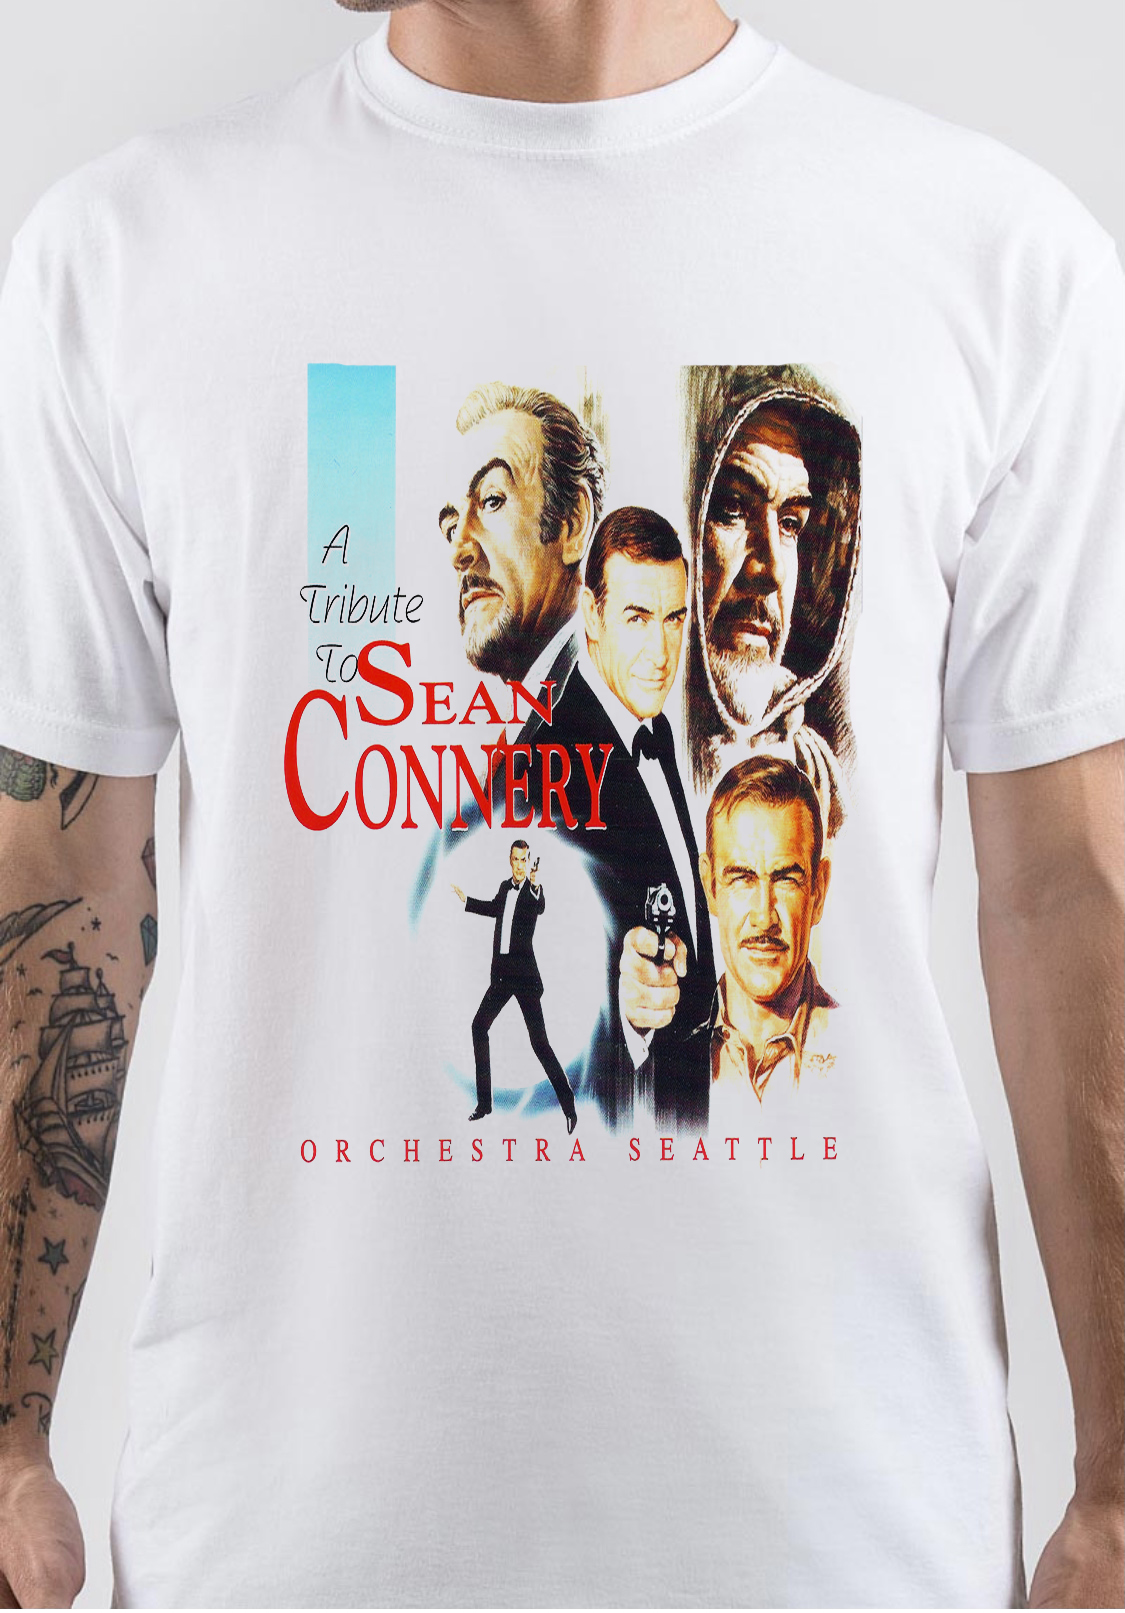 Sean Connery T-Shirt And Merchandise